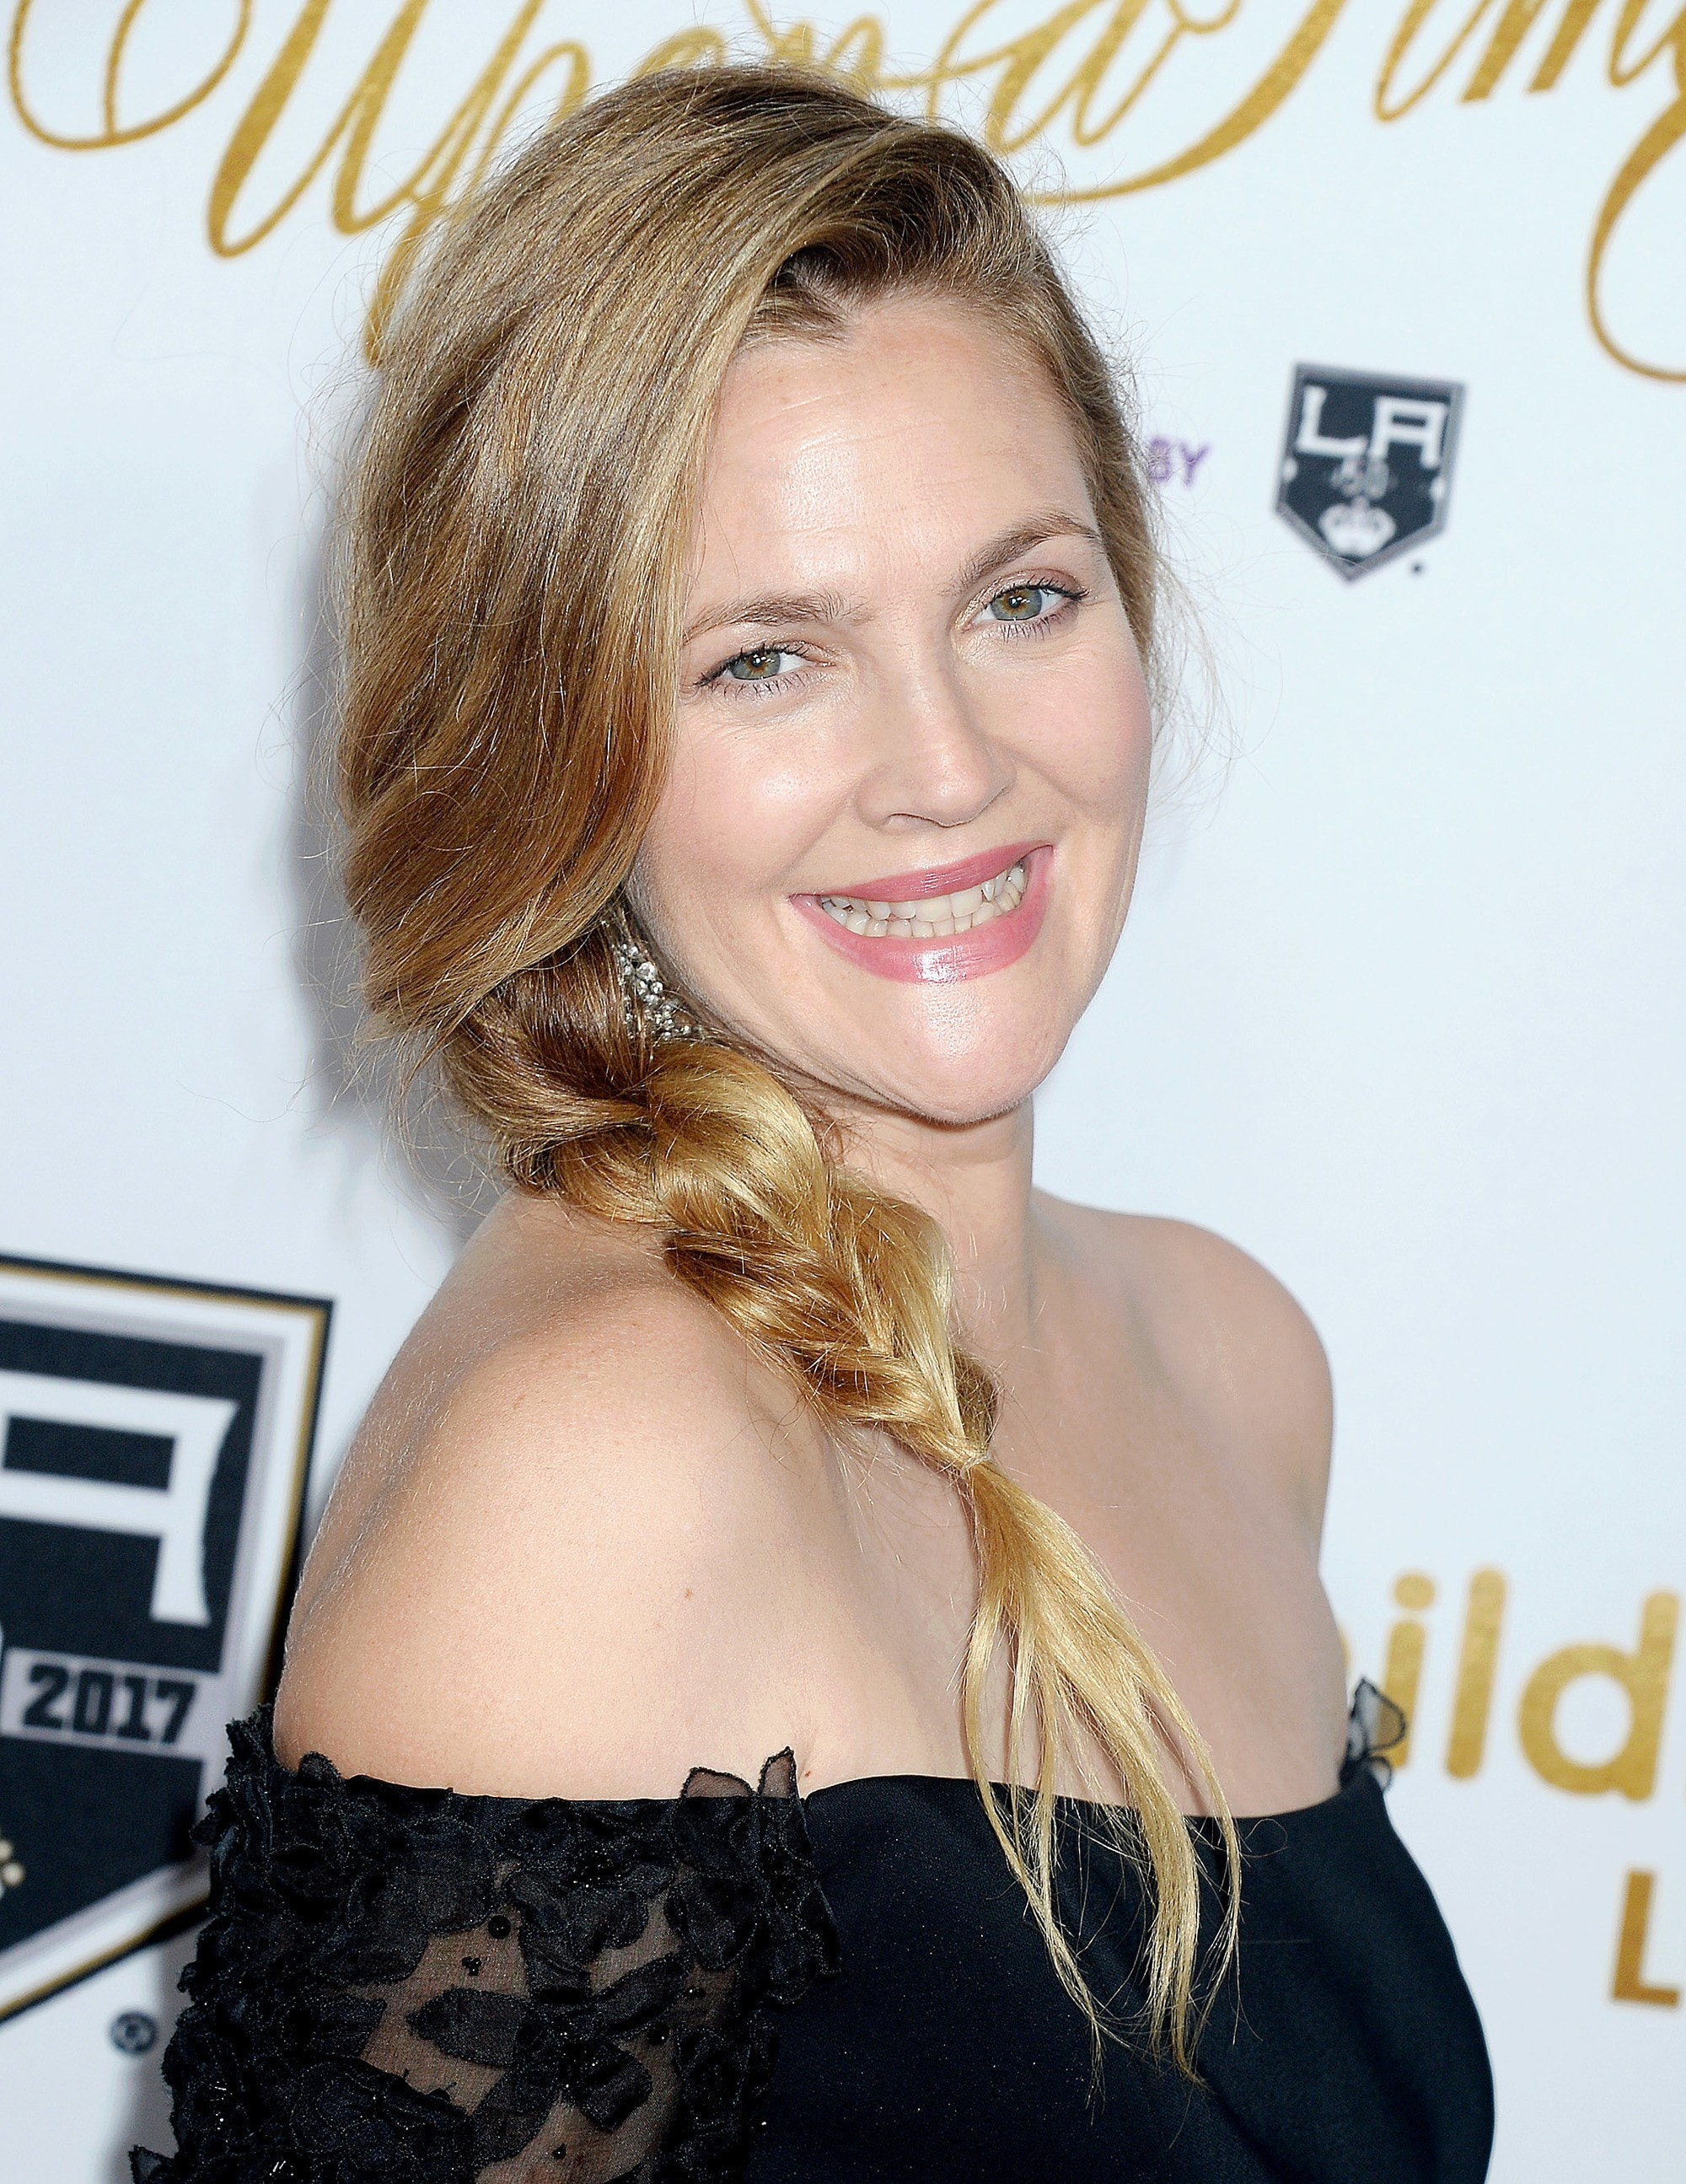 Side braid hairstyles: Drew Barrymore with long blonde side rope braid wearing a off the shoulder top.